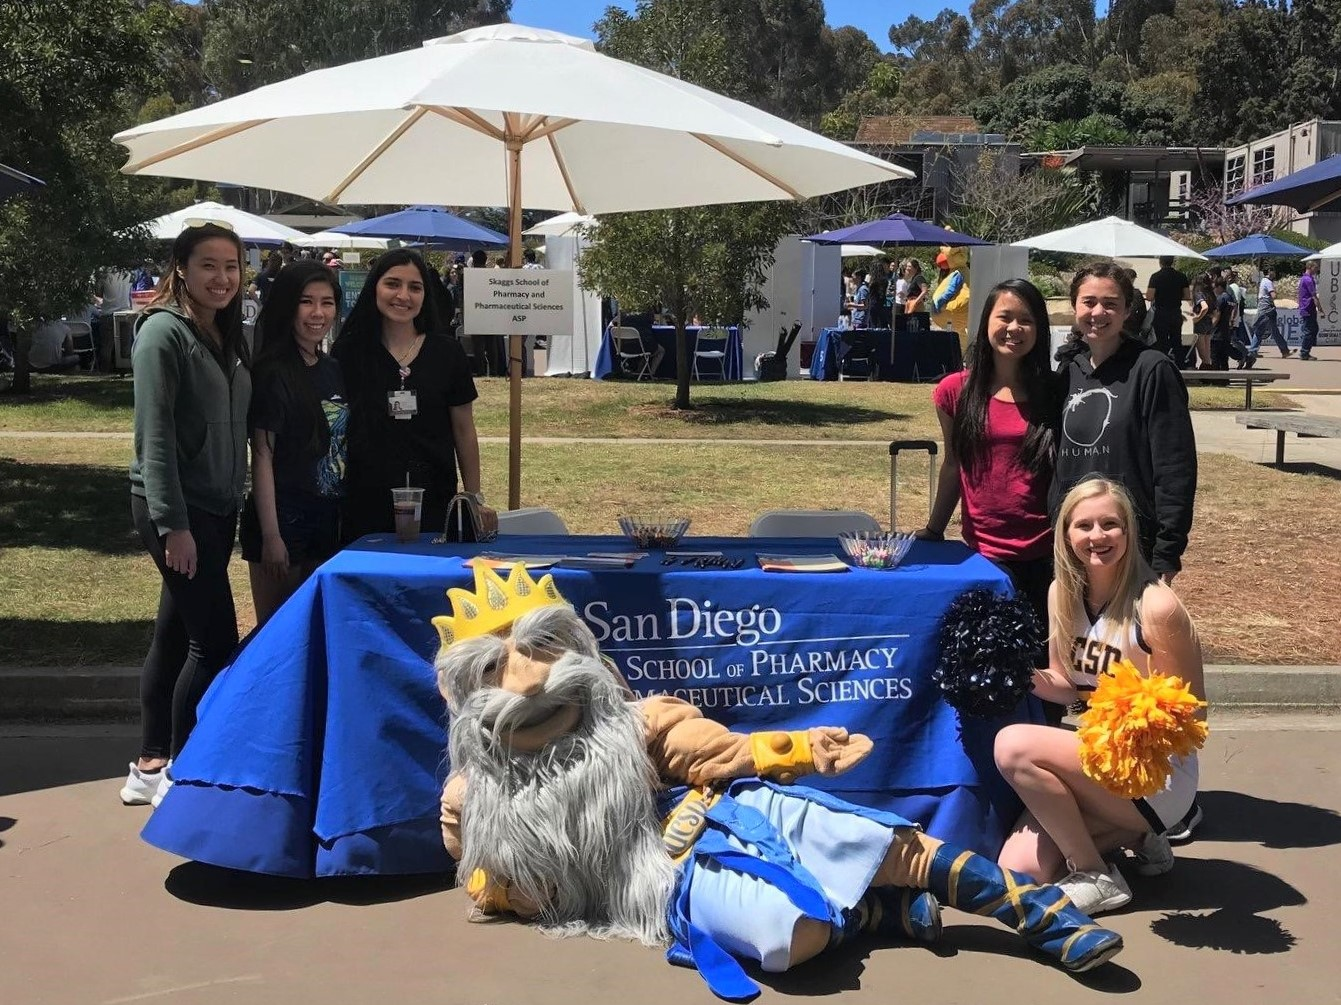 Skaggs students participating in the Welcome Triton event at UC San Diego